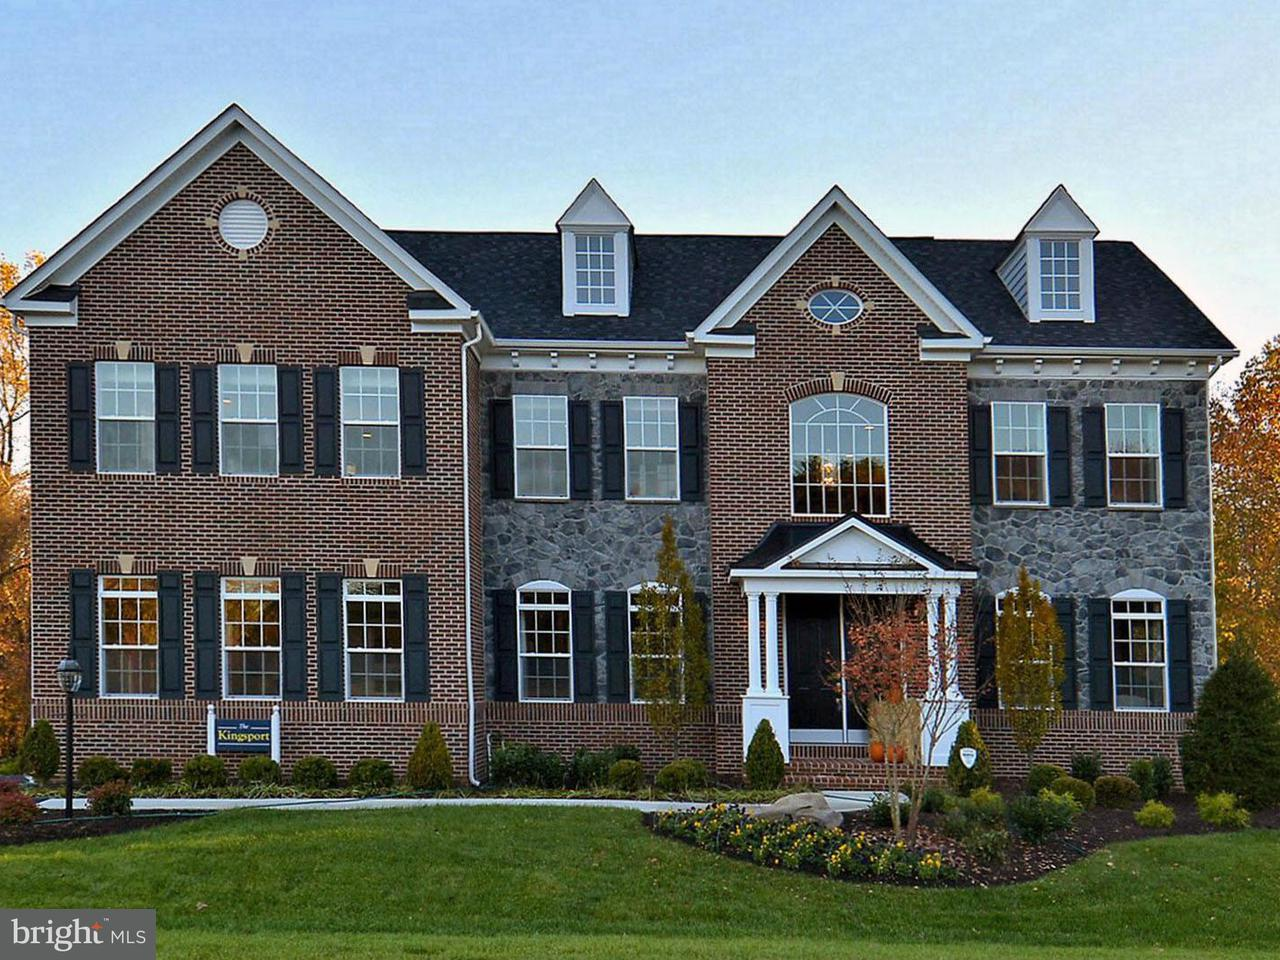 Villa per Vendita alle ore 20313 Wiley Court 20313 Wiley Court Laytonsville, Maryland 20882 Stati Uniti